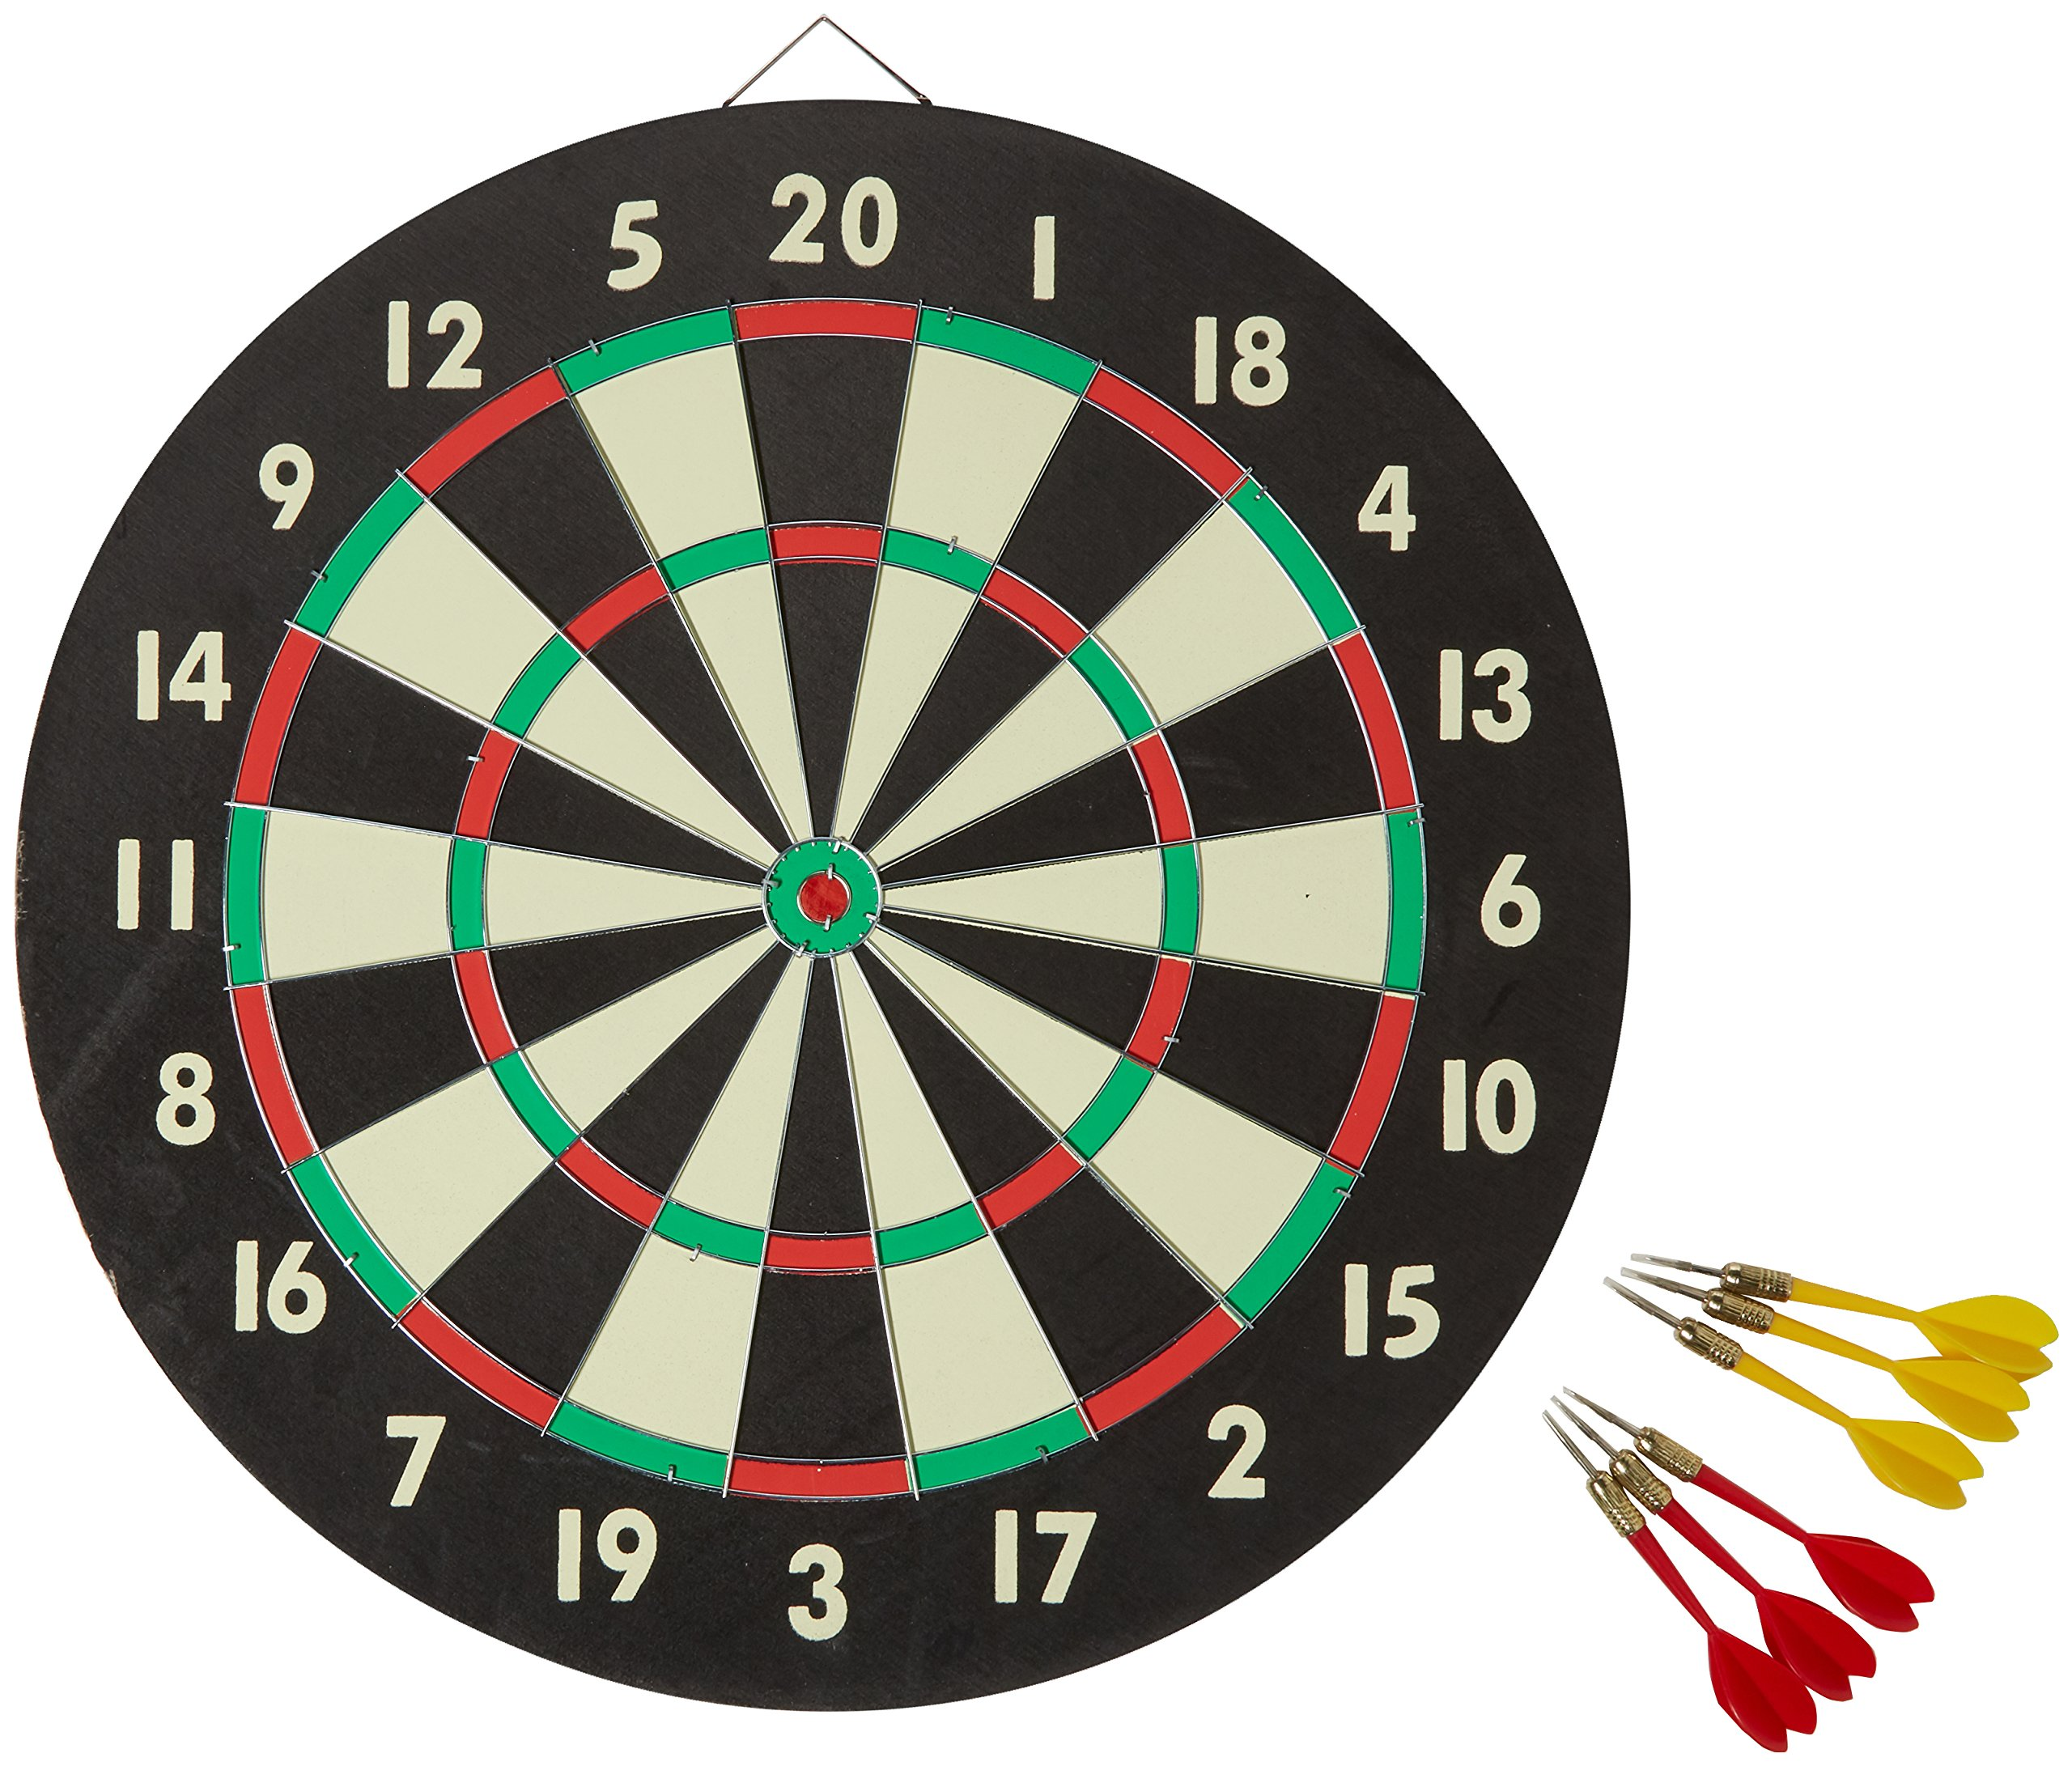 Accudart 2-in-1 Starlite Quality-Bound Paper Dartboard Game Set with Six Included Brass Darts